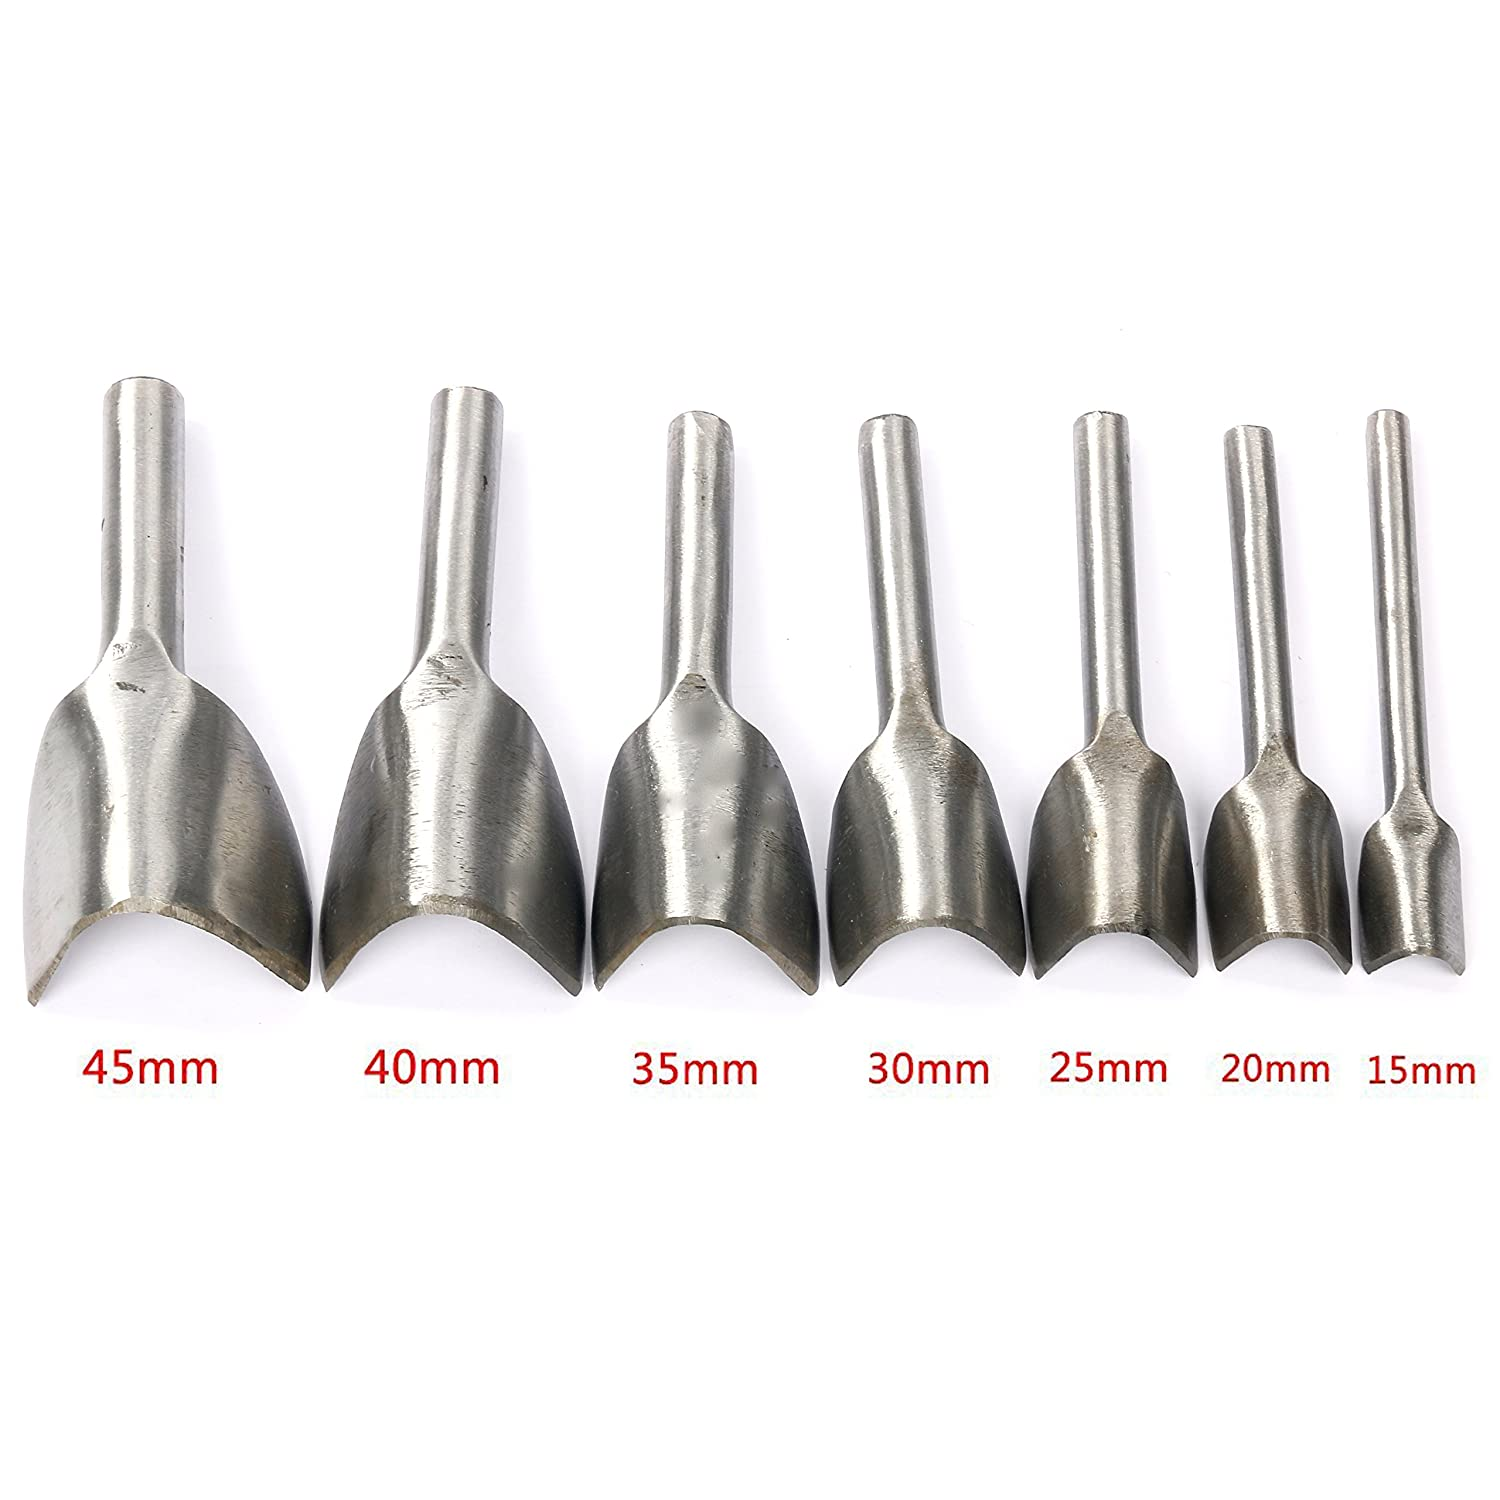 Yaetek Stainless Steel 6MM 2/4/6 Prong Row Hole Punch DIY Diamond Lacing Stitching Chisel Set Leather Craft Kits (6mm) Yaemart Corportation